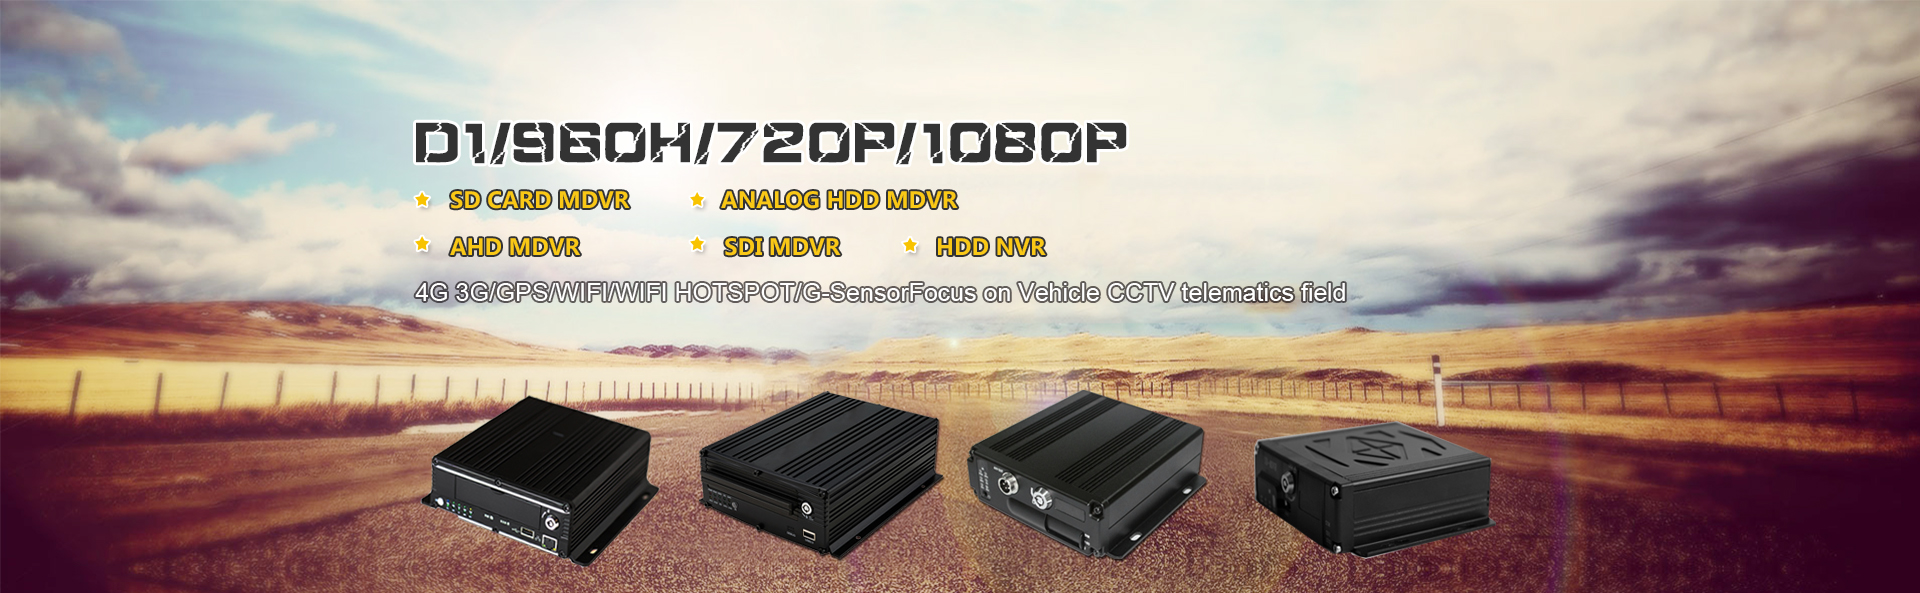 1080P 720P Mobile 3G 4G GPS WIFI MDVR